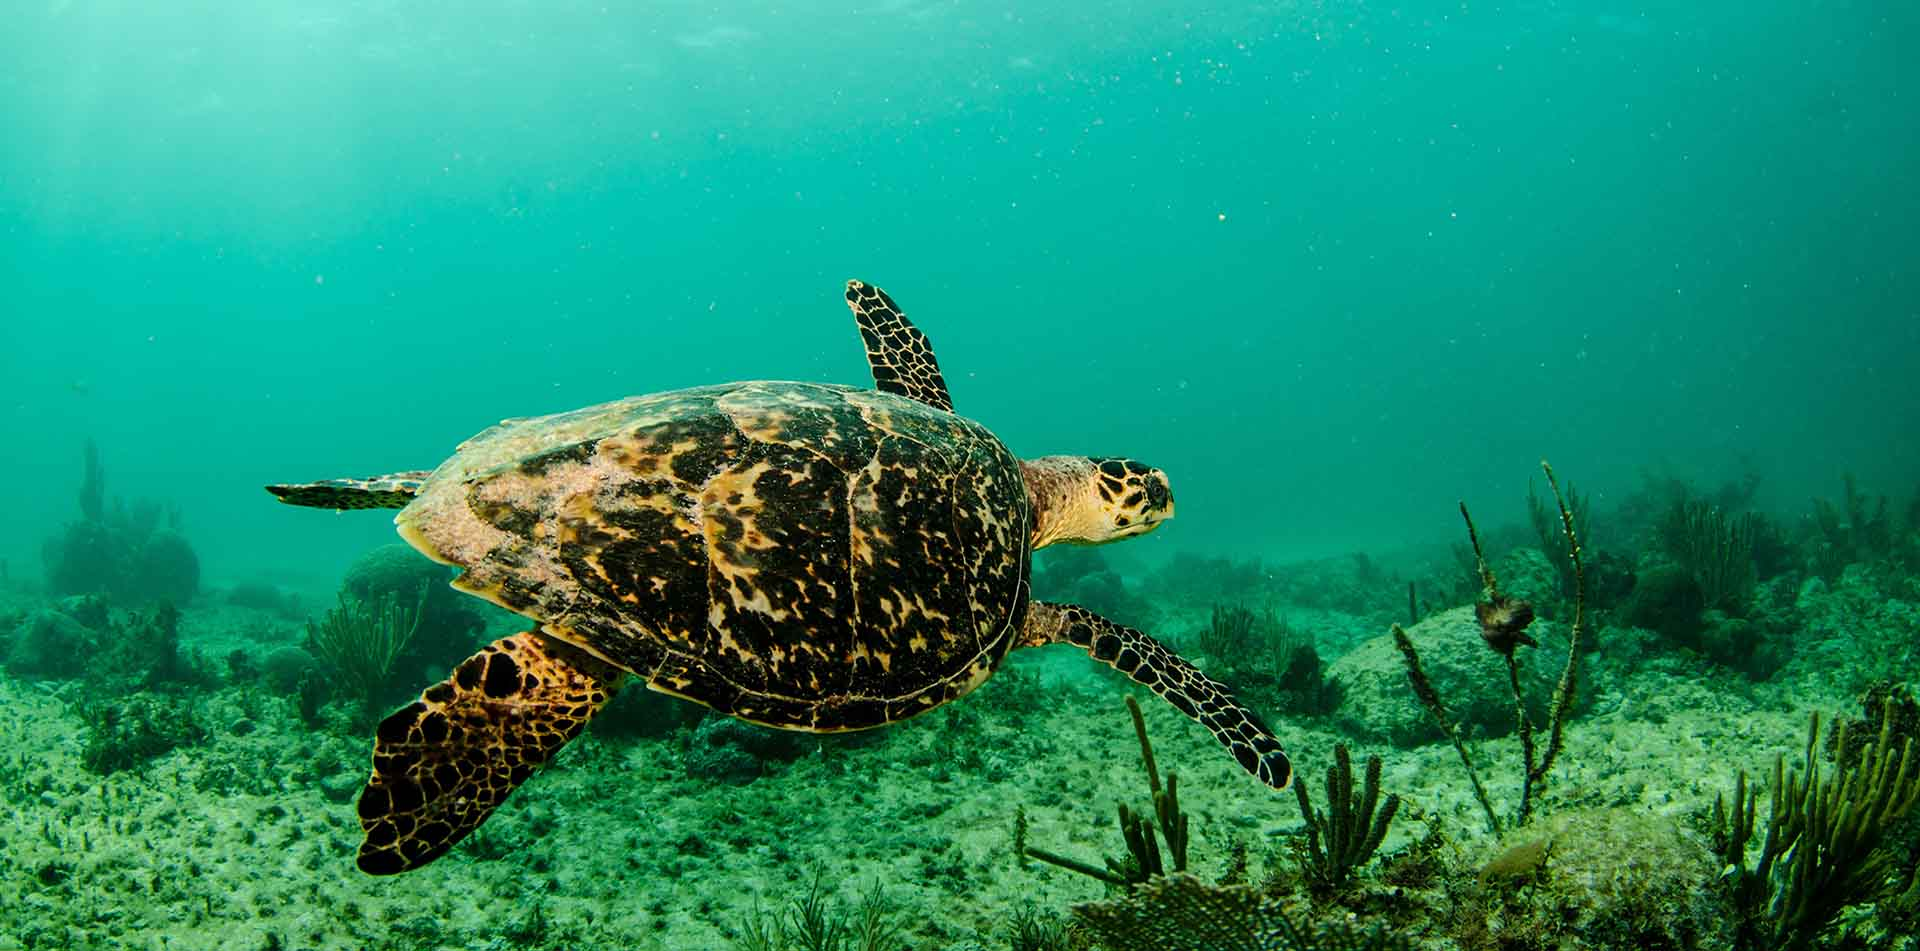 Belize North America Sea Turtle Island Explore Tour Travel Destination - luxury vacation destinations